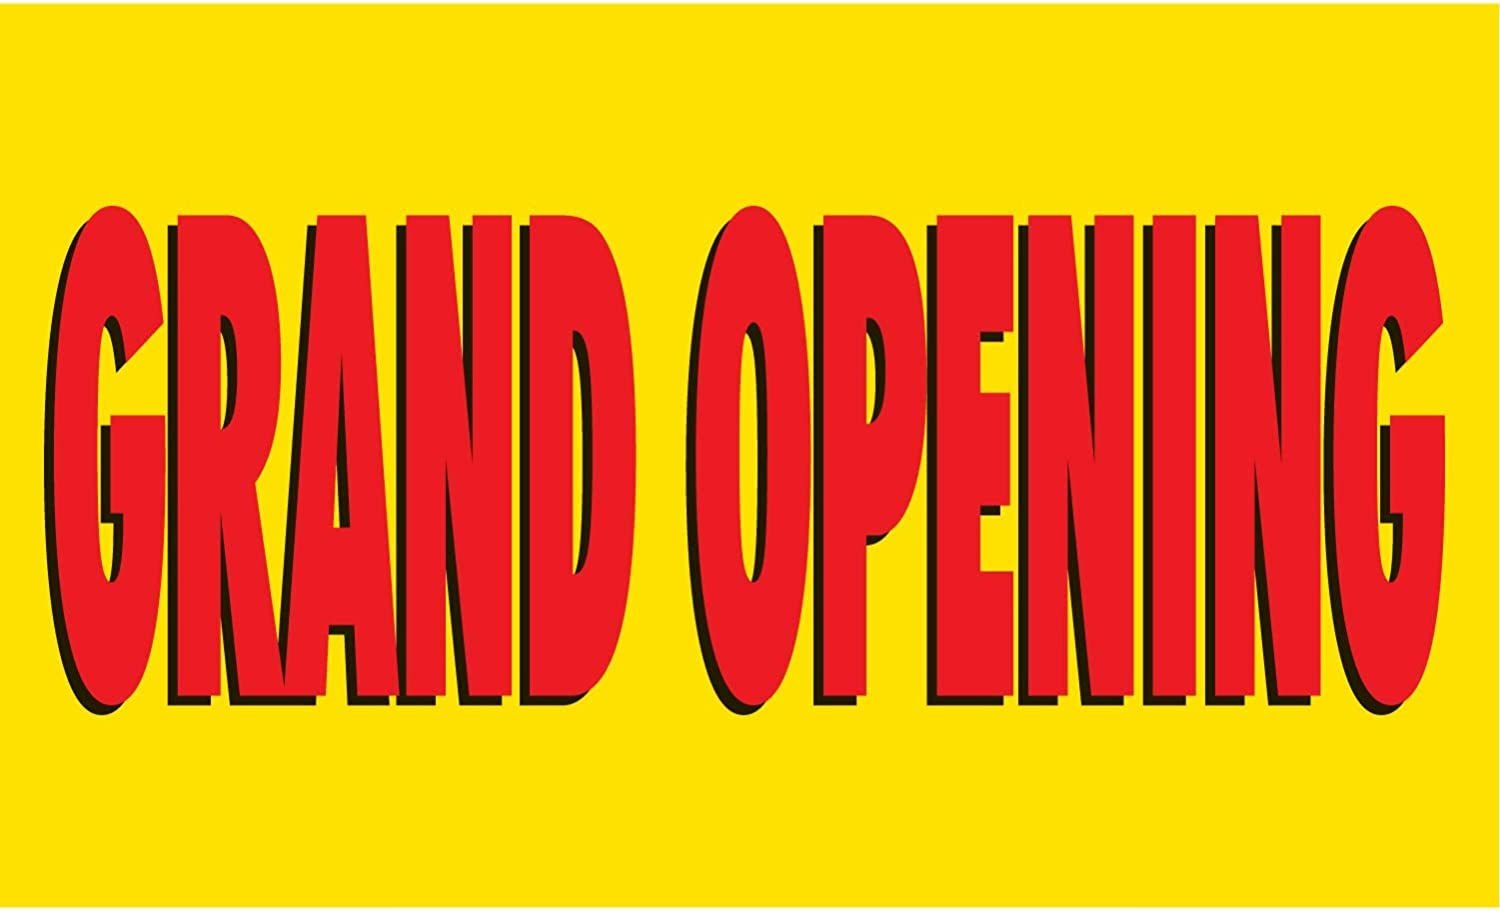 HALF PRICE BANNERS Grand Opening Vinyl Banner -Heavy Duty Outdoor 4X8 Foot -Yellow Easy Hang Sign-Made in USA Includes Zip Ties